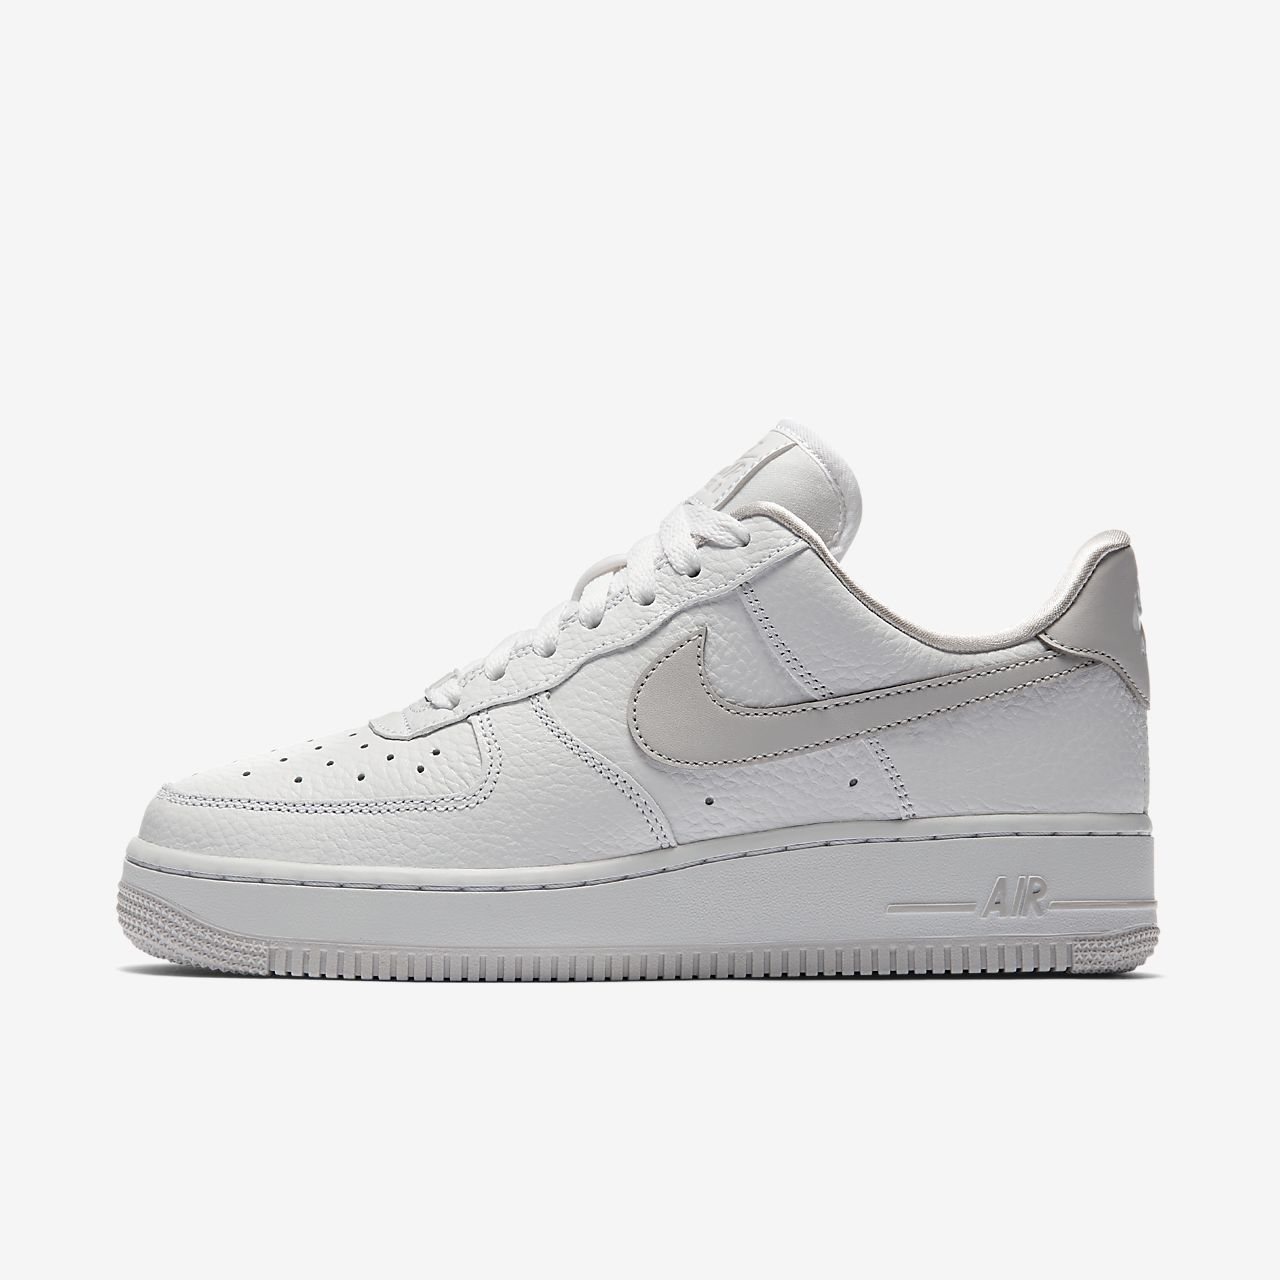 Chaussures Nike Air Force 1 36 multicolores Casual TkEfhbg